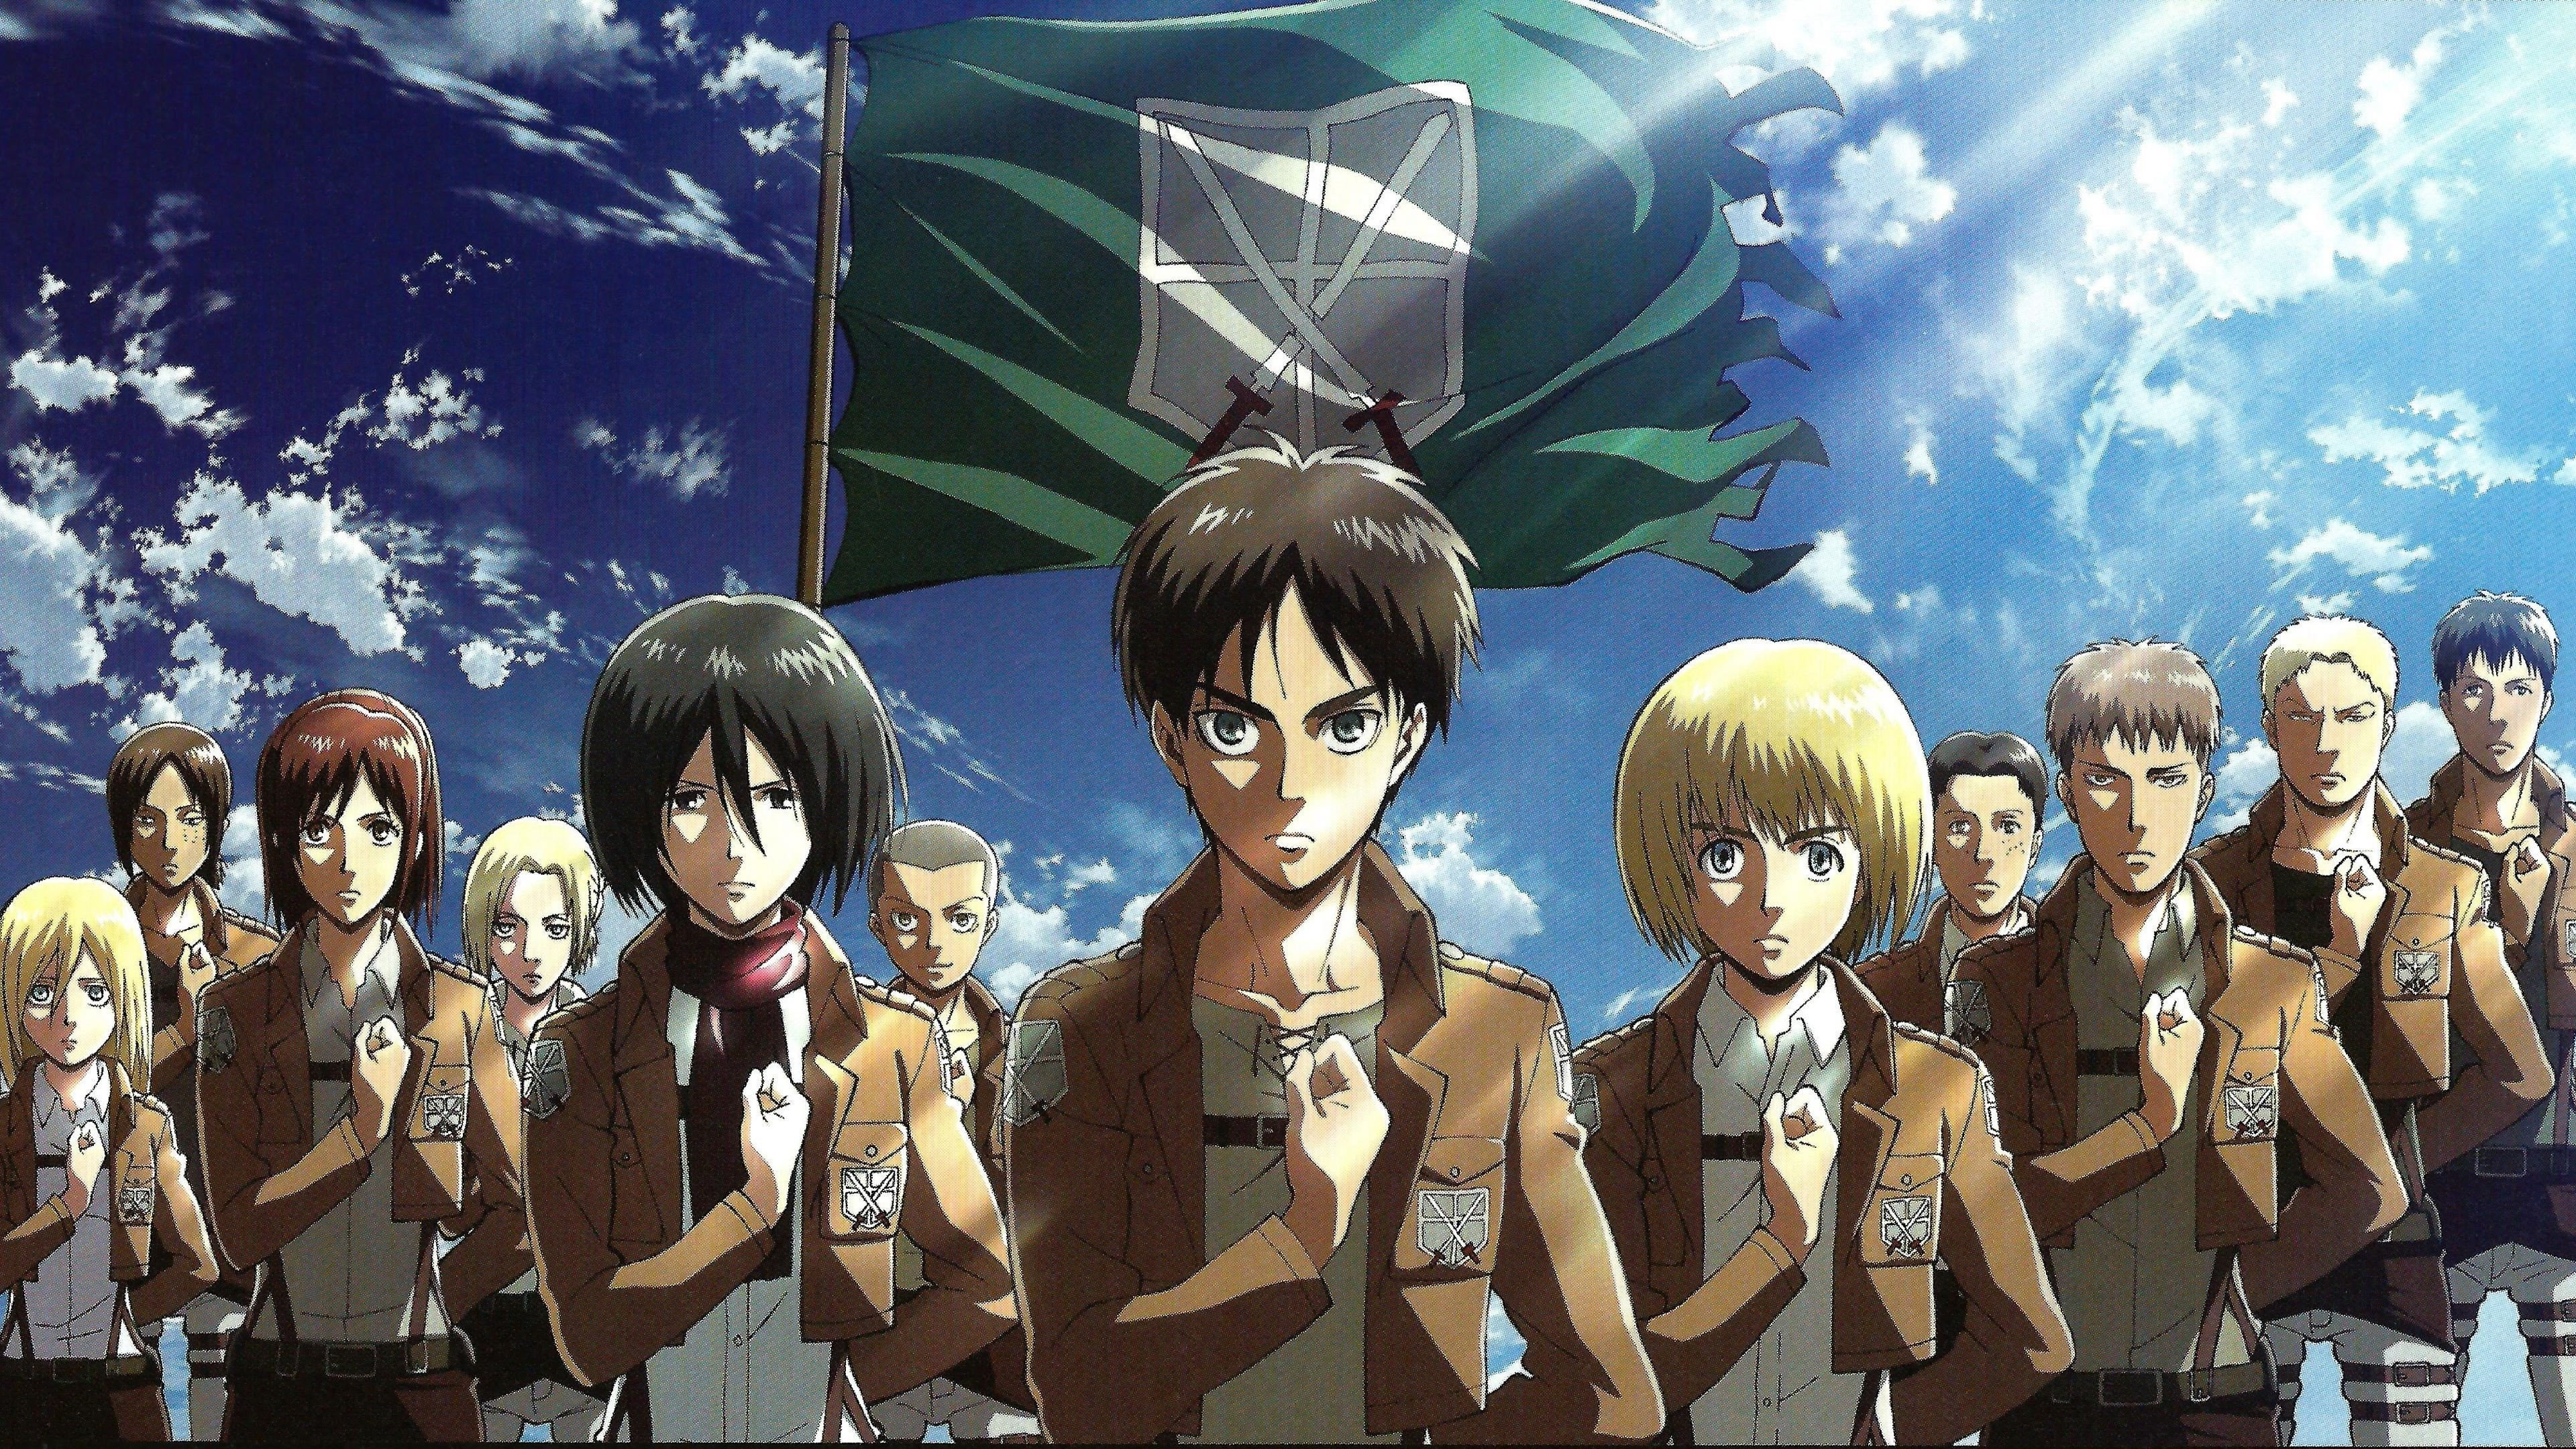 Survey Corps Aot Background Gambarku